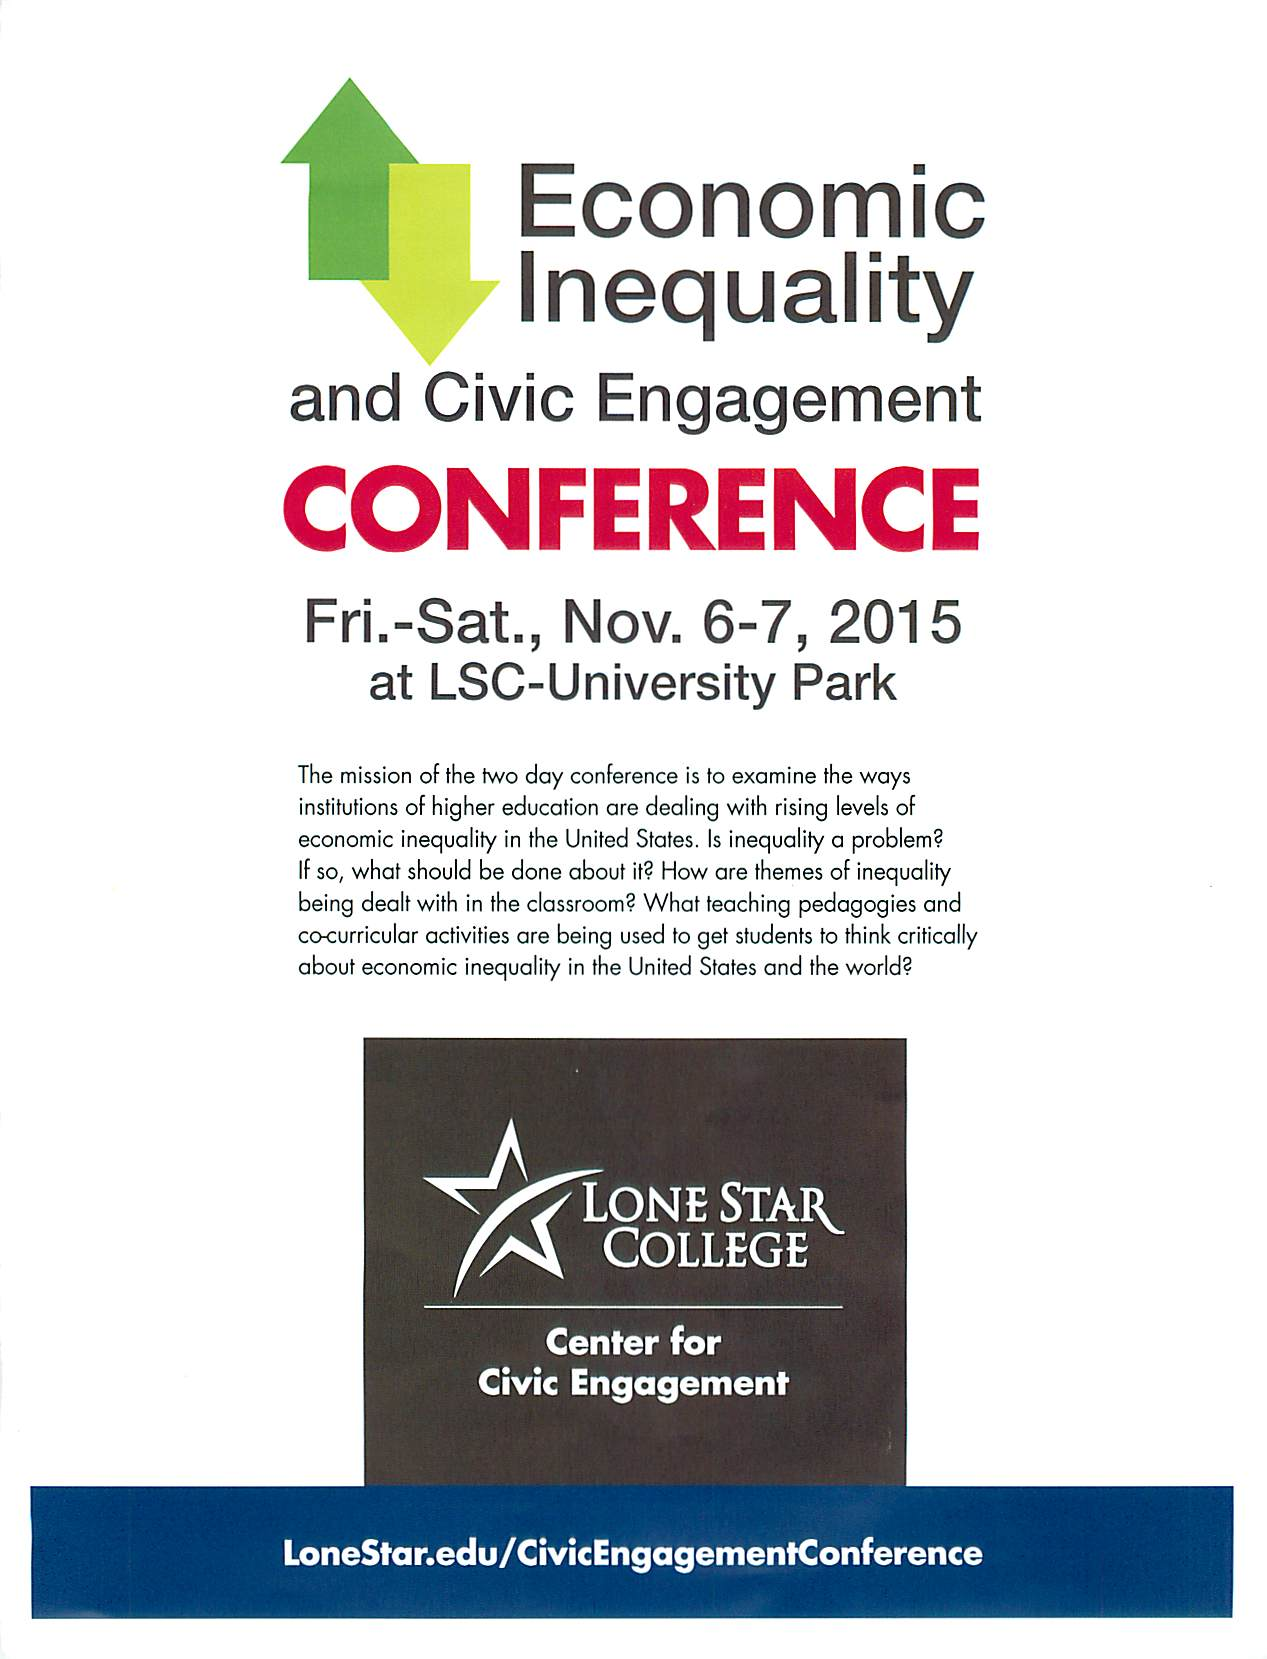 Research on economic inequality